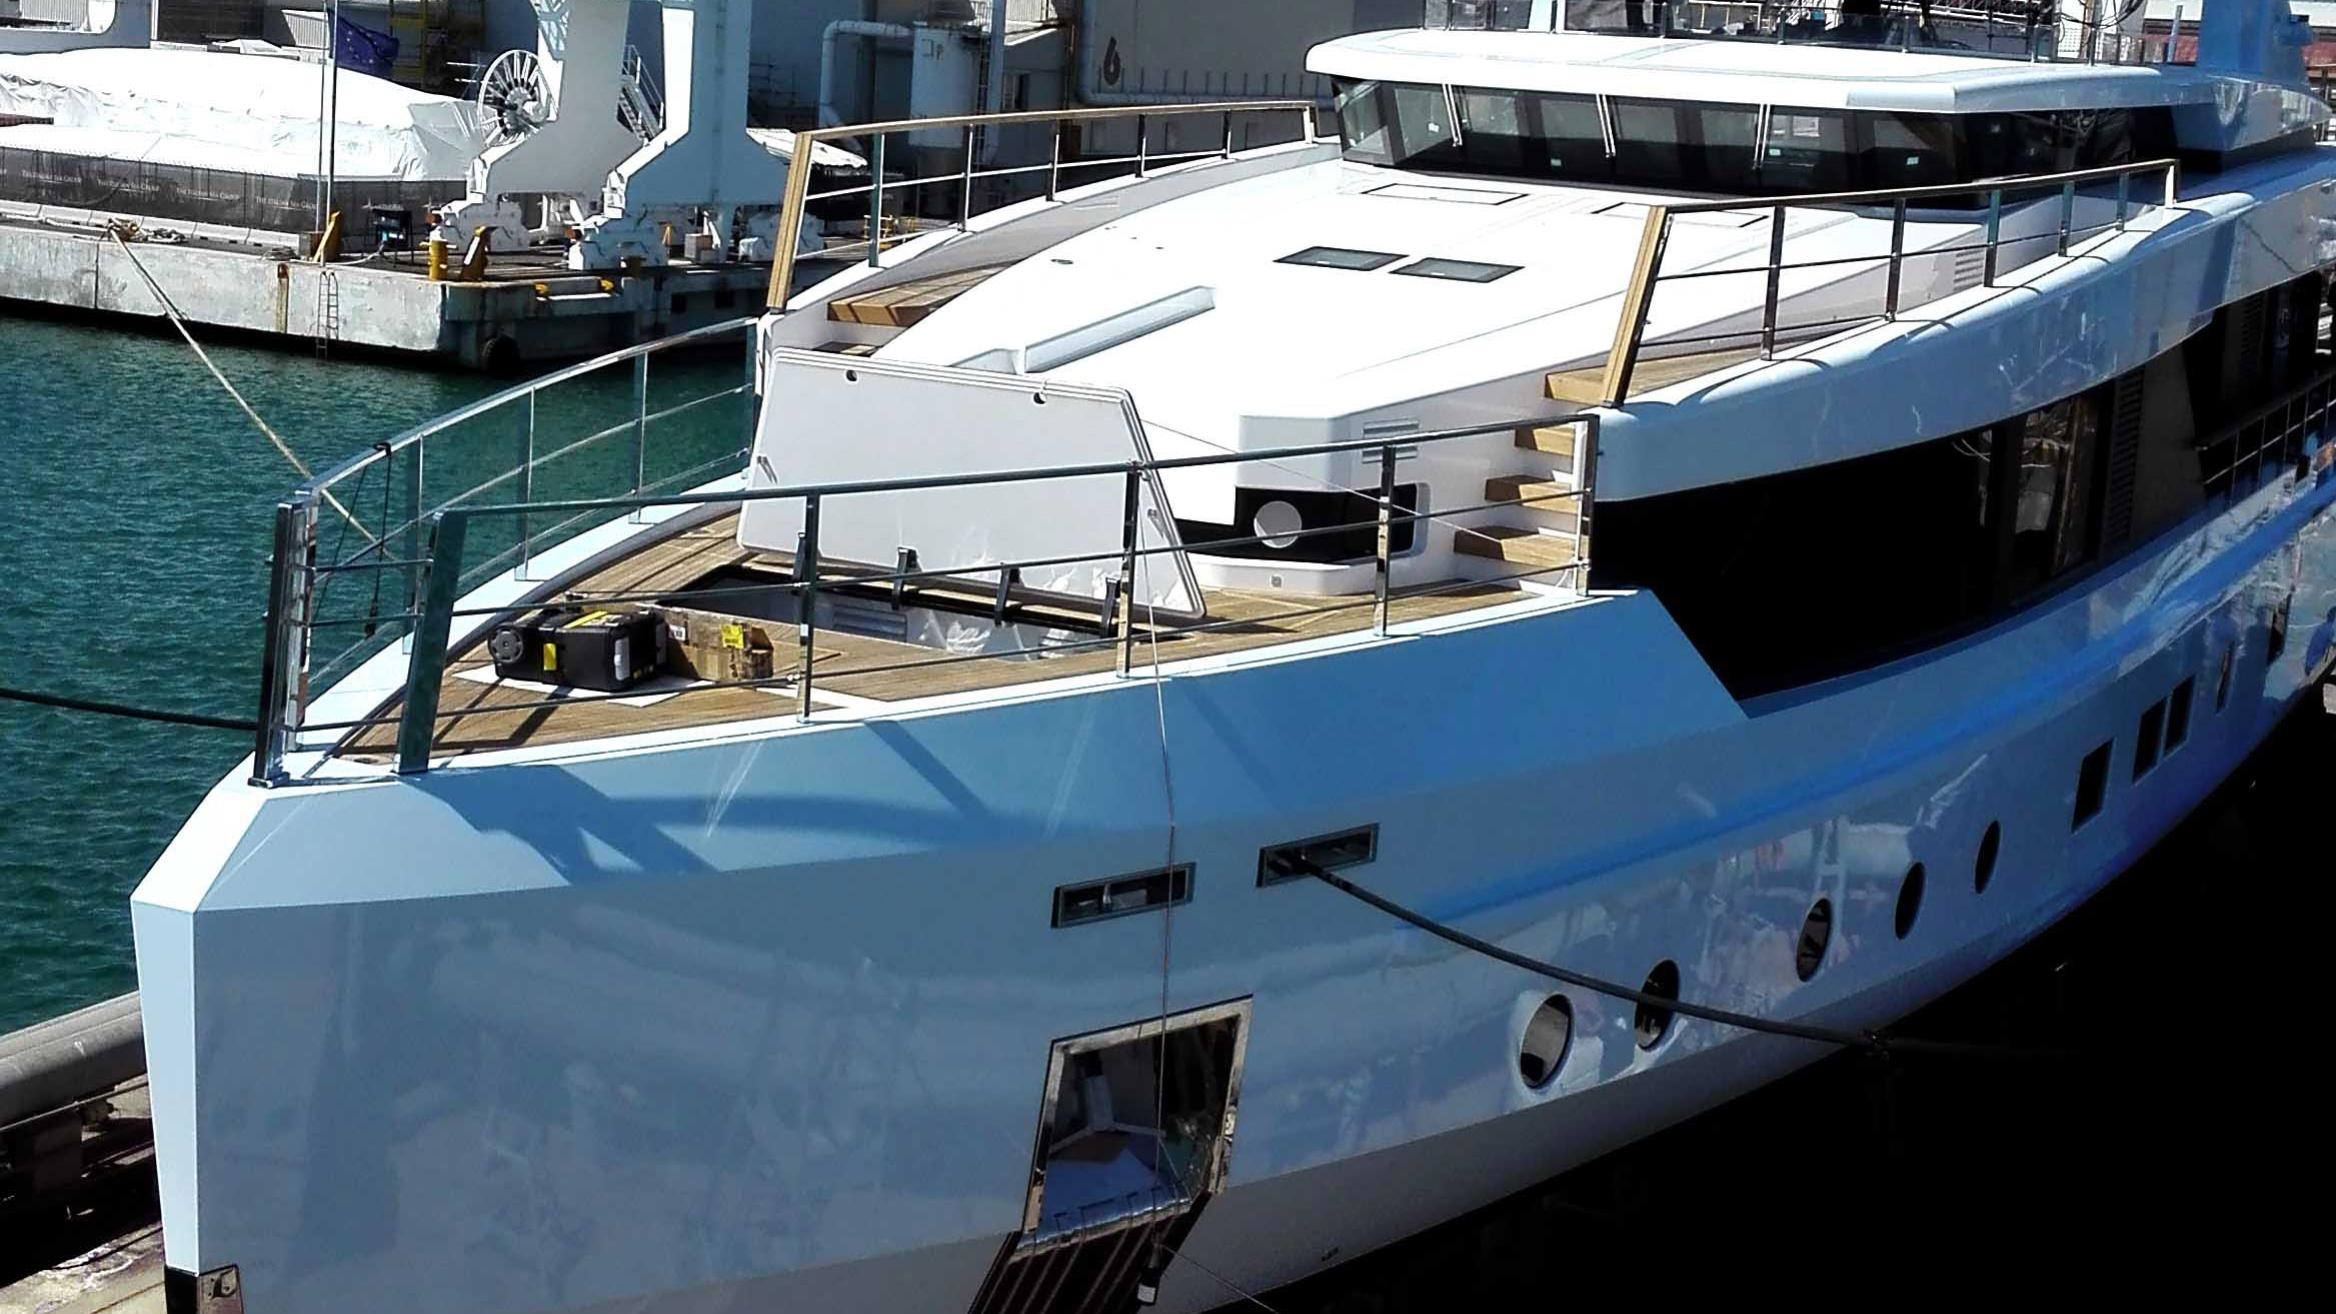 sage motoryacht admiral impero 40m 2017 launch aerial bow